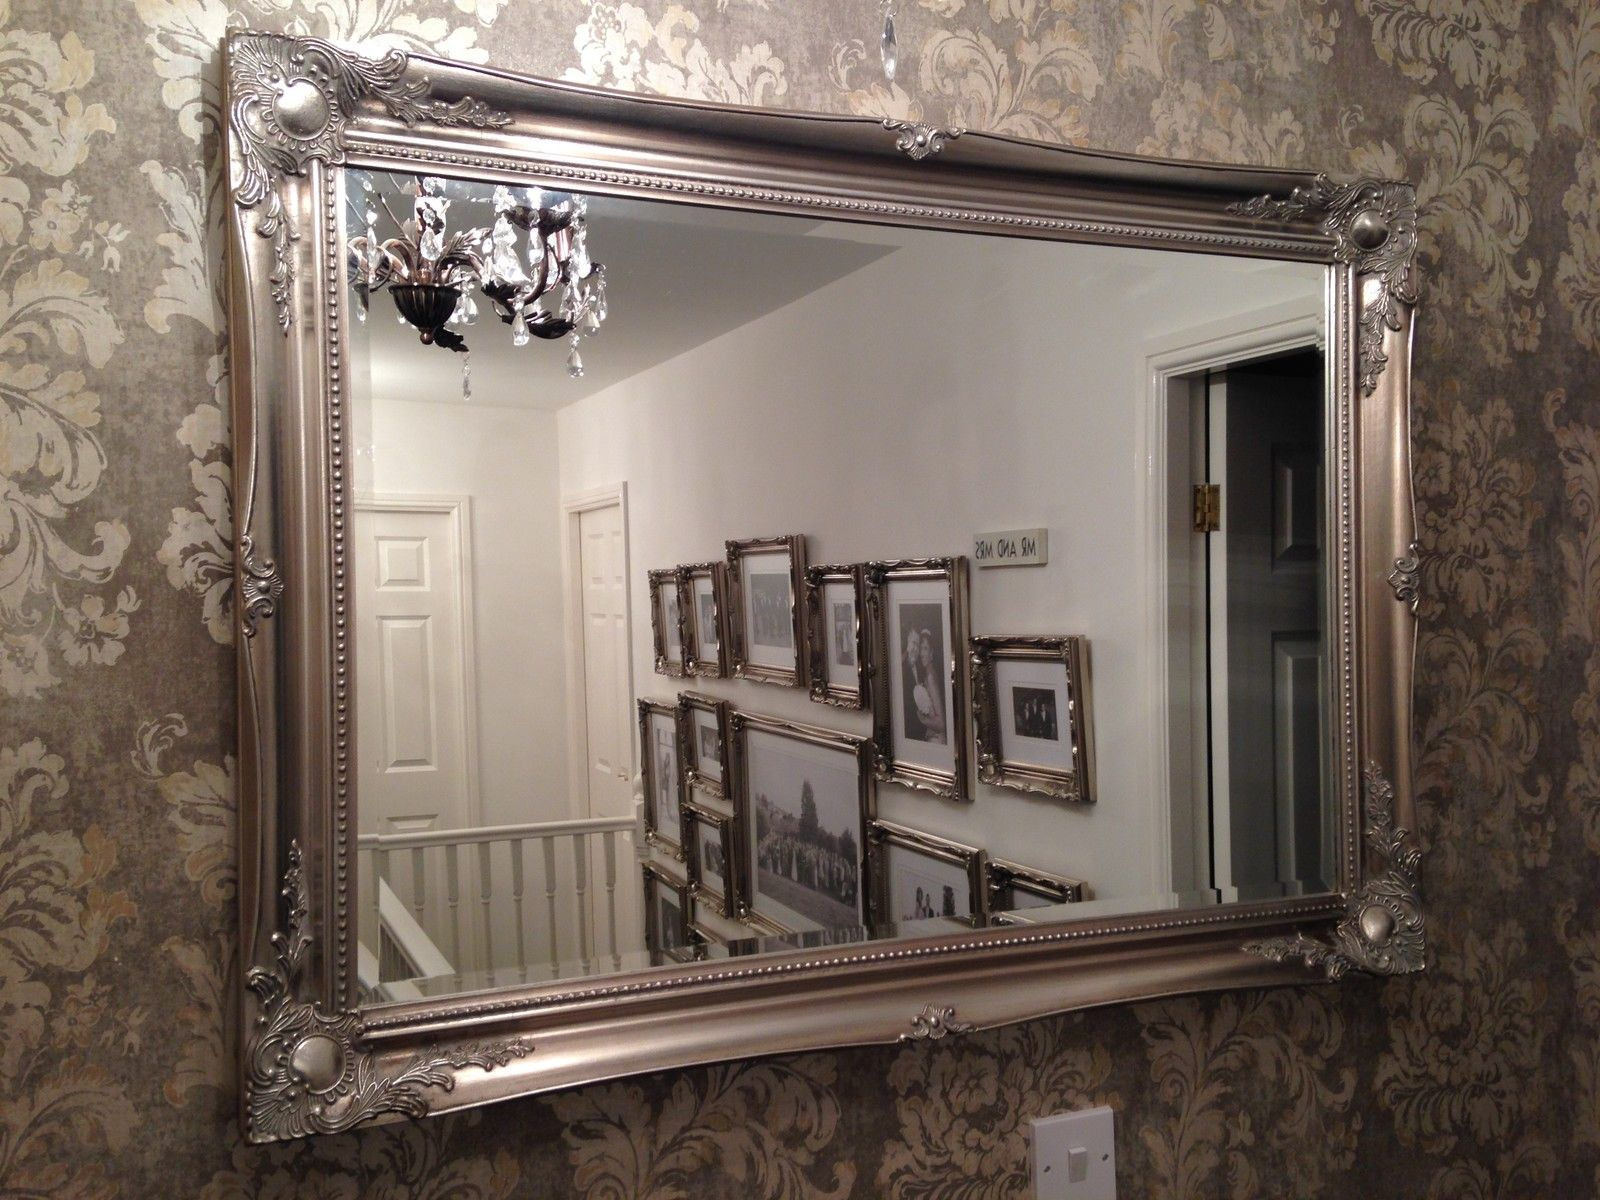 Merveilleux Mirror Large Decorative Mirrors With A Wall Using Wallpaper Looks Like  Something Flirty The Large Decorative